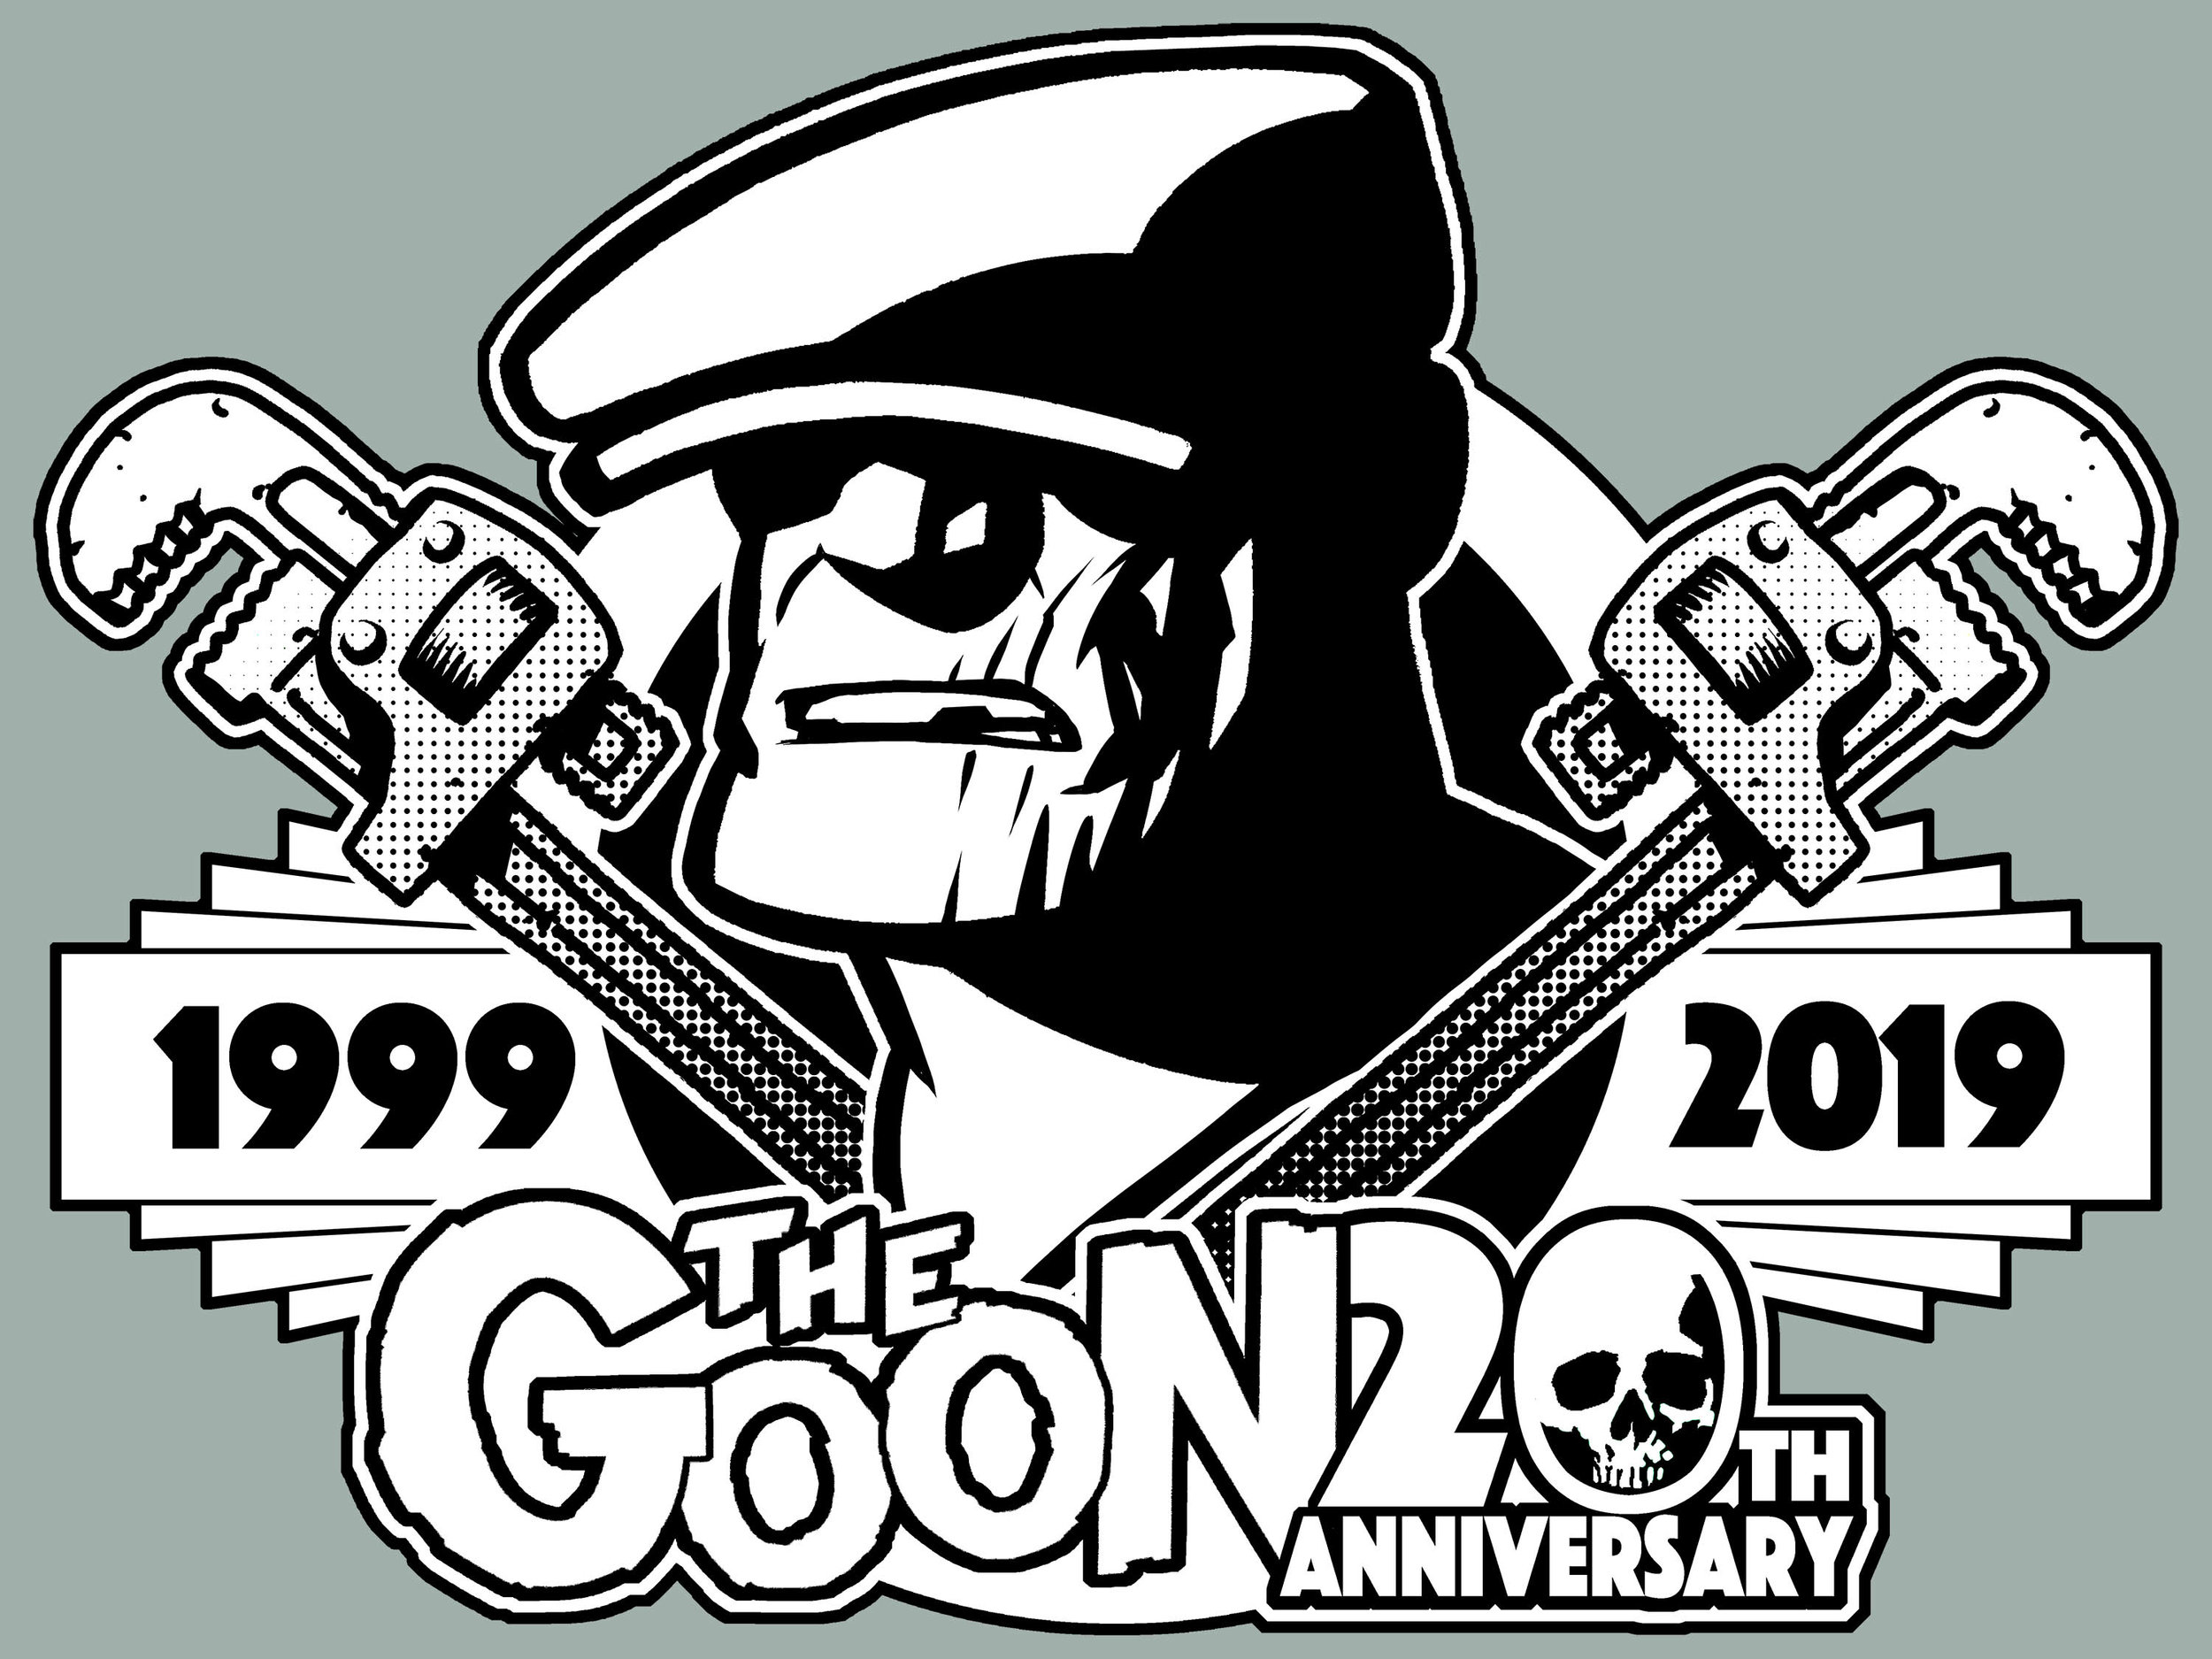 Goon_20th_logo-01.jpg